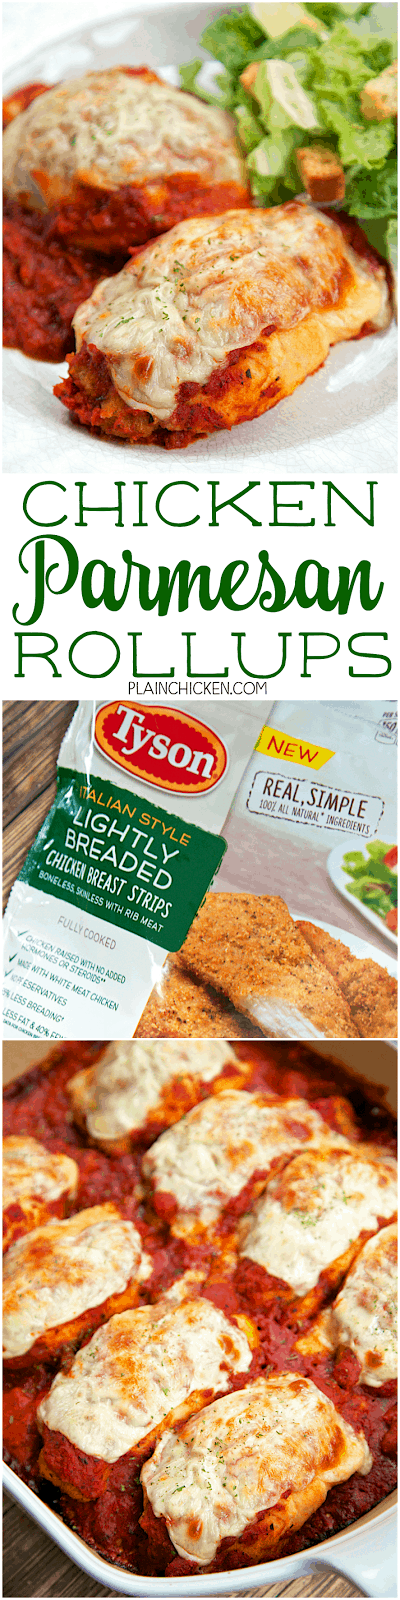 Chicken Parmesan Rollups - only 4 ingredients!! SO simple and everyone LOVED this Italian casserole. Frozen chicken strips, mozzarella cheese, crescent rolls and marinara sauce. Use Tyson Italian Style Lightly Breaded Chicken Breast Strips for extra flavor in the rollups. Only took about 5 minutes to make and it was on the table in under 30 minutes. Love!!